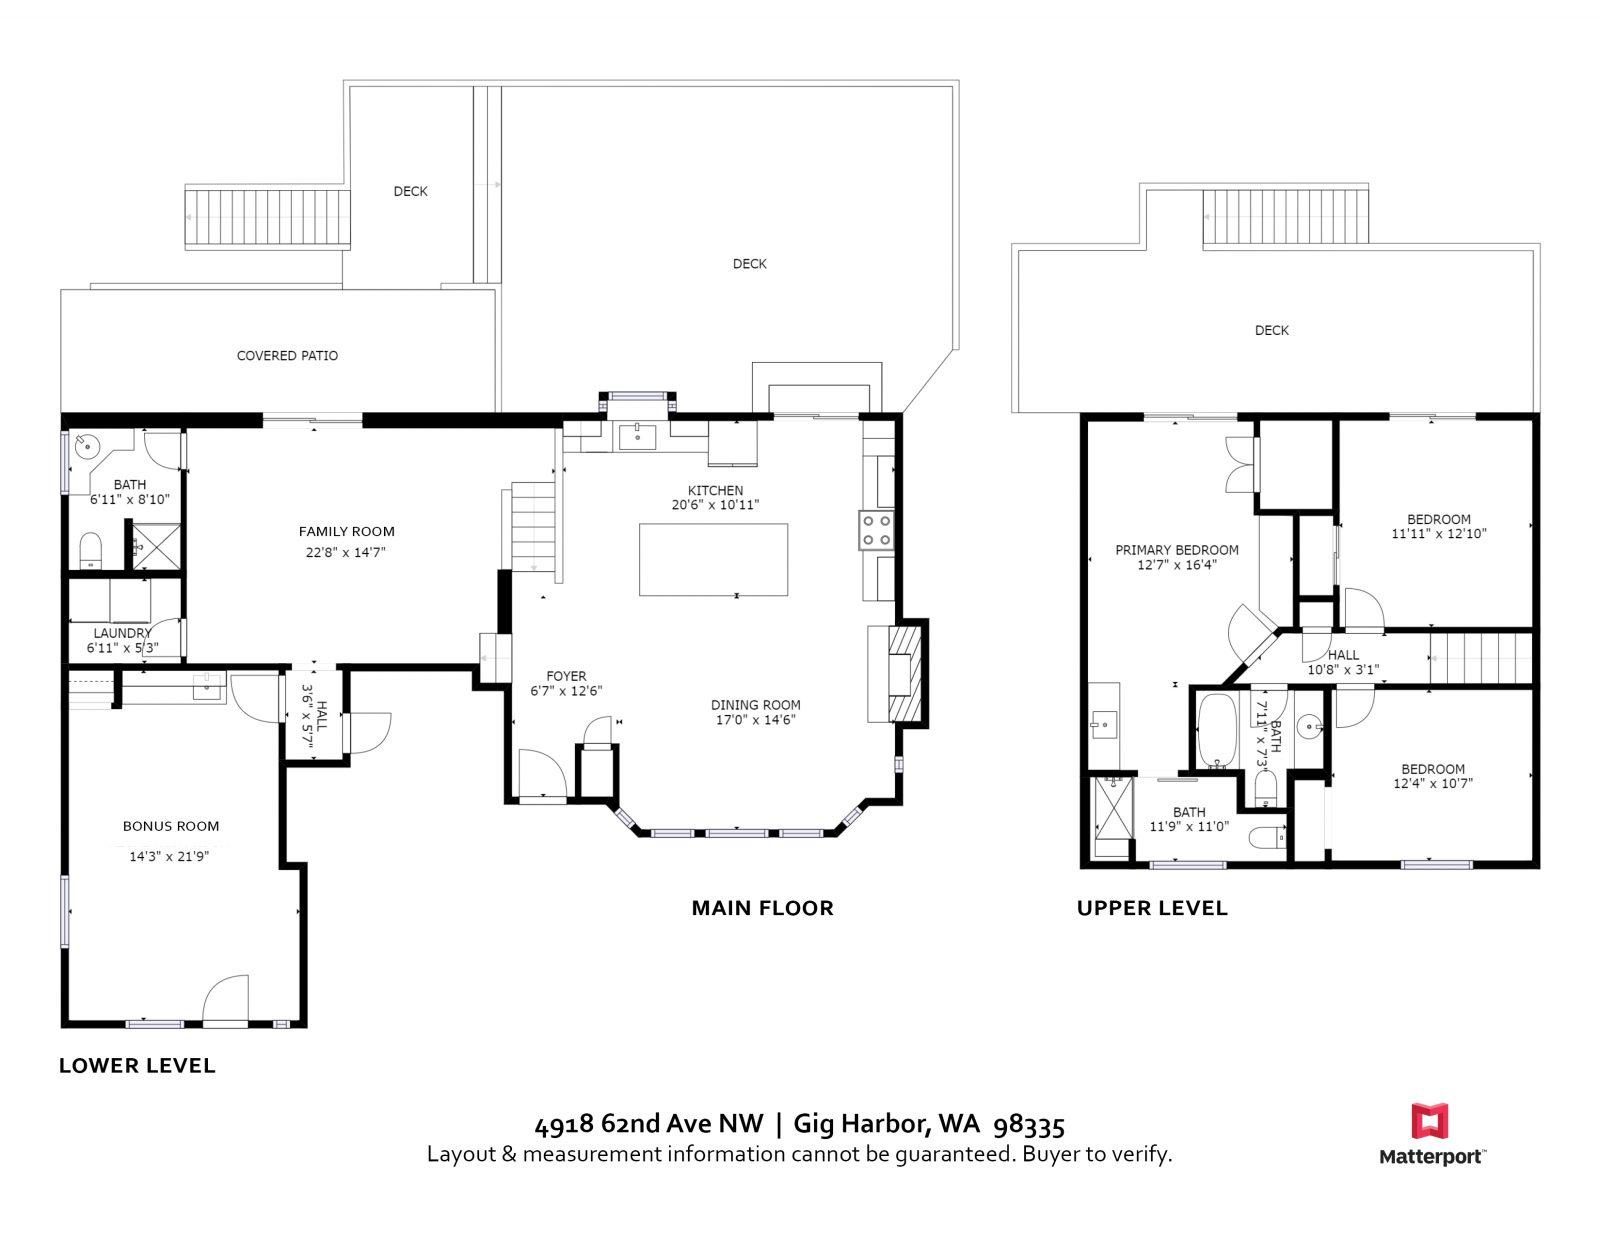 Floor Plan   4918 62nd Ave NW